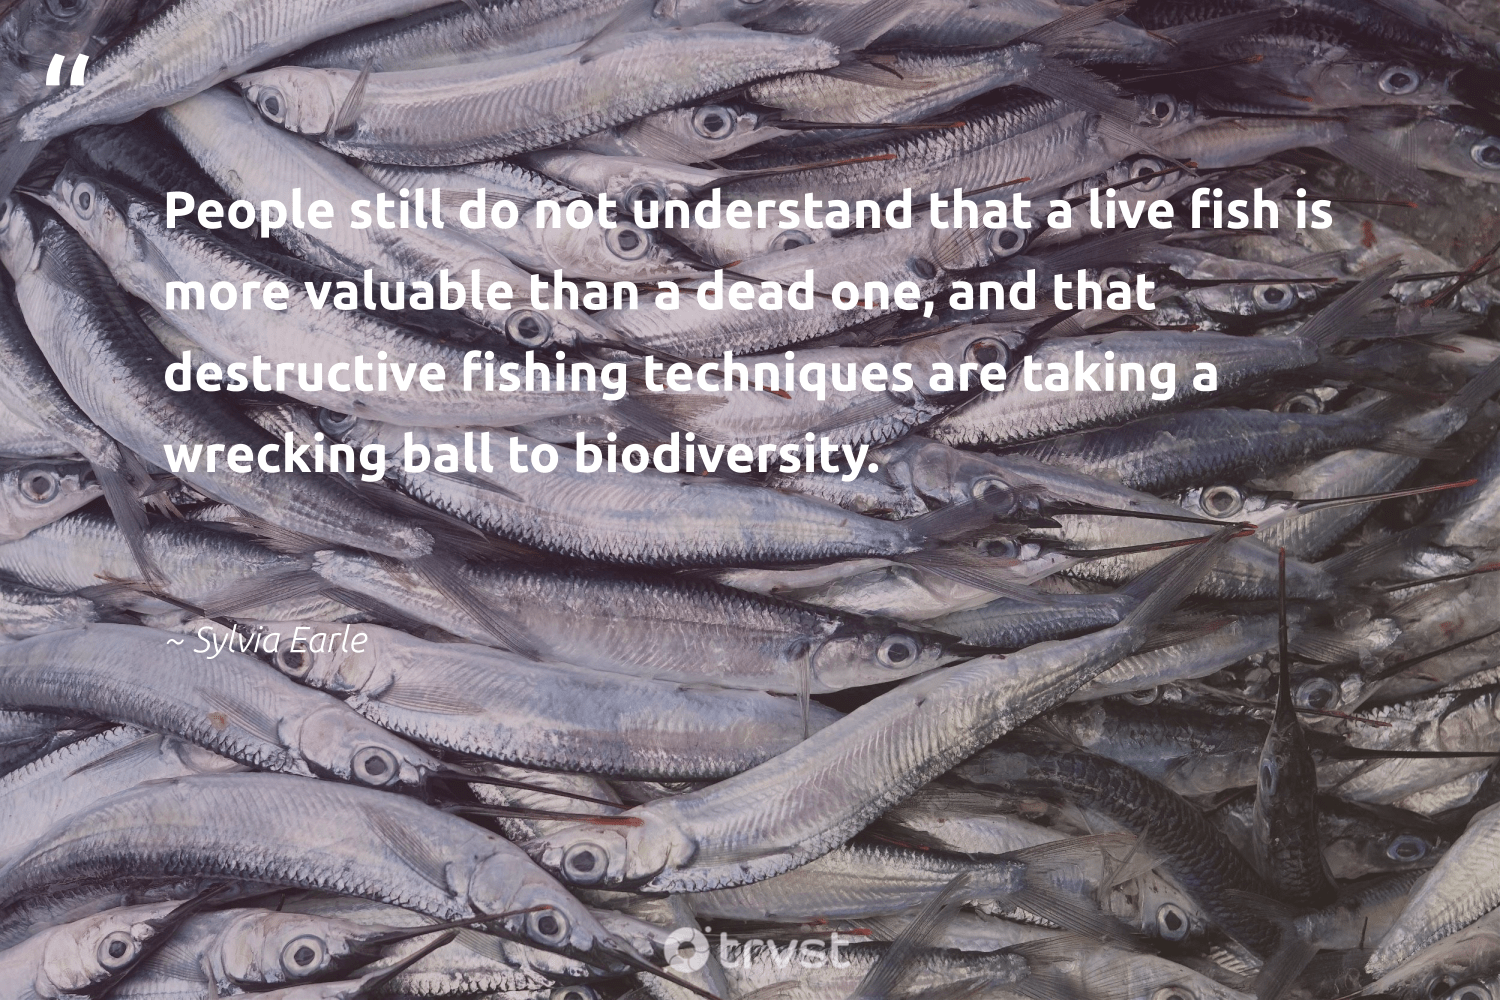 """""""People still do not understand that a live fish is more valuable than a dead one, and that destructive fishing techniques are taking a wrecking ball to biodiversity.""""  - Sylvia Earle #trvst #quotes #fishing #fish #biodiversity #conservation #wildlife #natural #bethechange #nature #perfectnature #geology"""